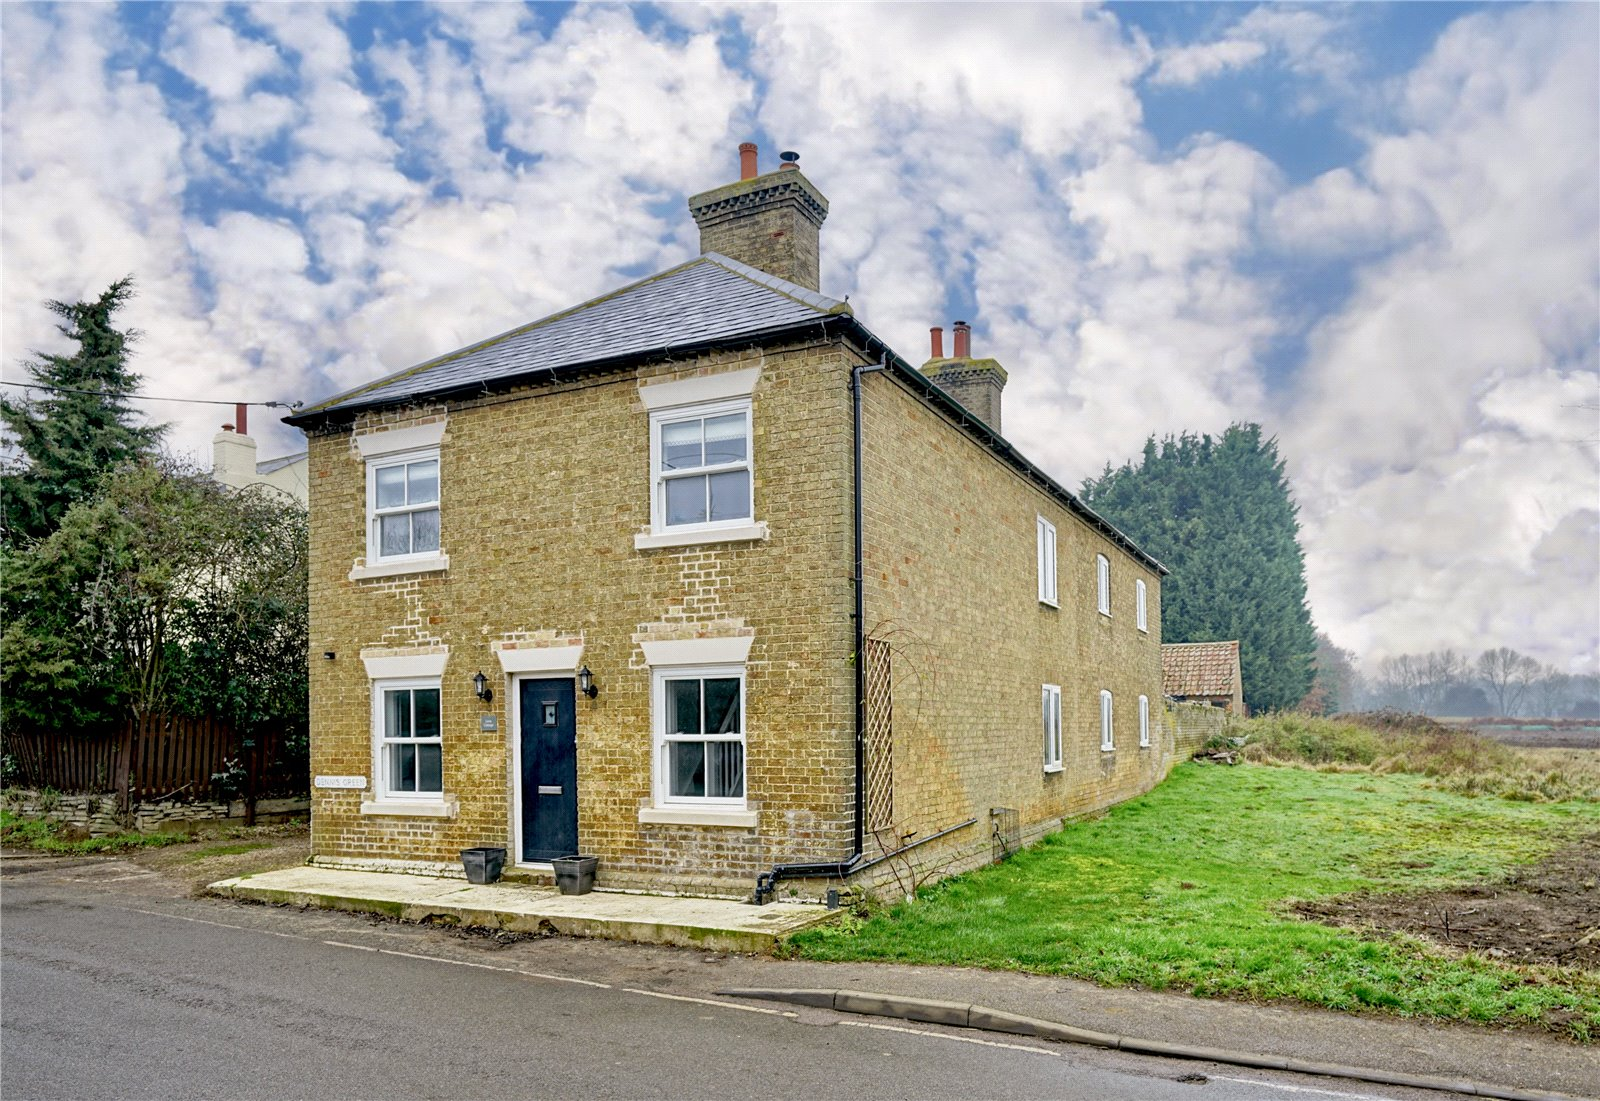 2 bed house for sale in Dennis Green, Gamlingay 0